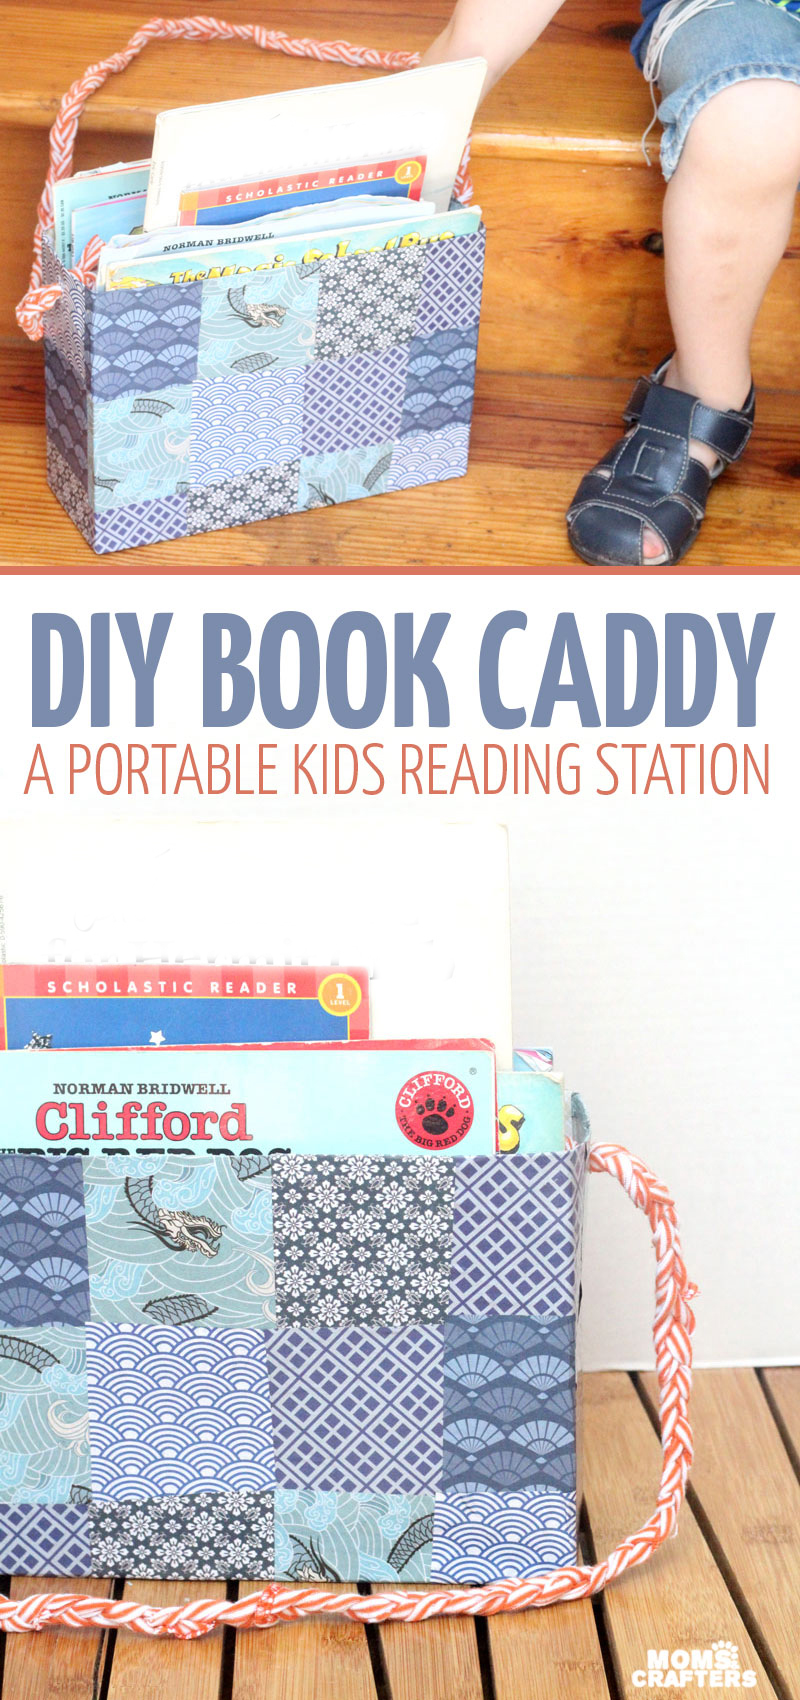 Make this DIY book tote from a recycled cereal box to transport books from the bookshelf to the reading nook! I love this idea because we have a few reading corners in our home, and it's a great way to keep things organized and neat.